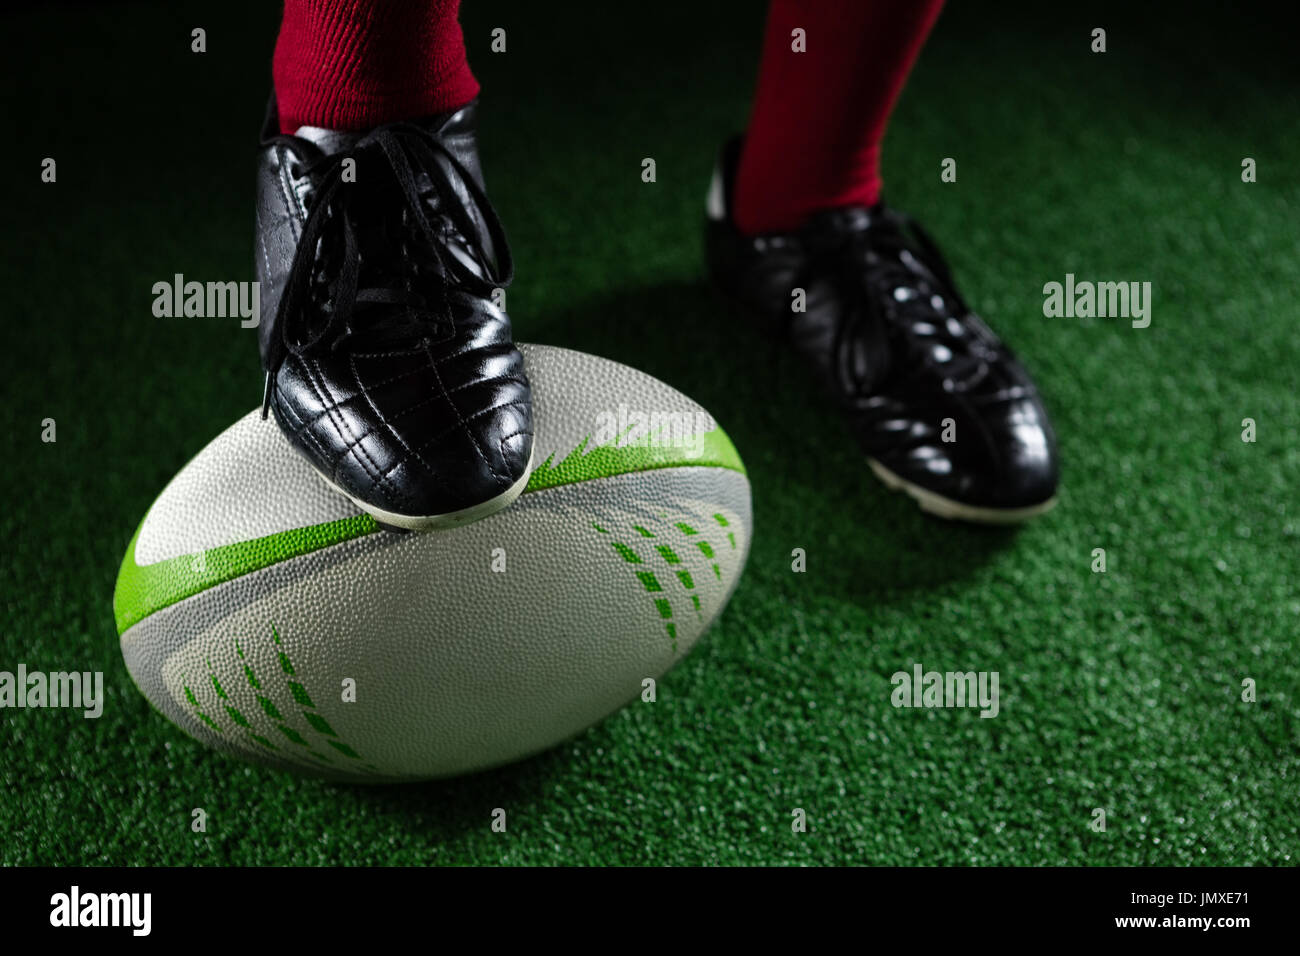 Low section of sportsperson stepping on rugby ball while plying rugby - Stock Image